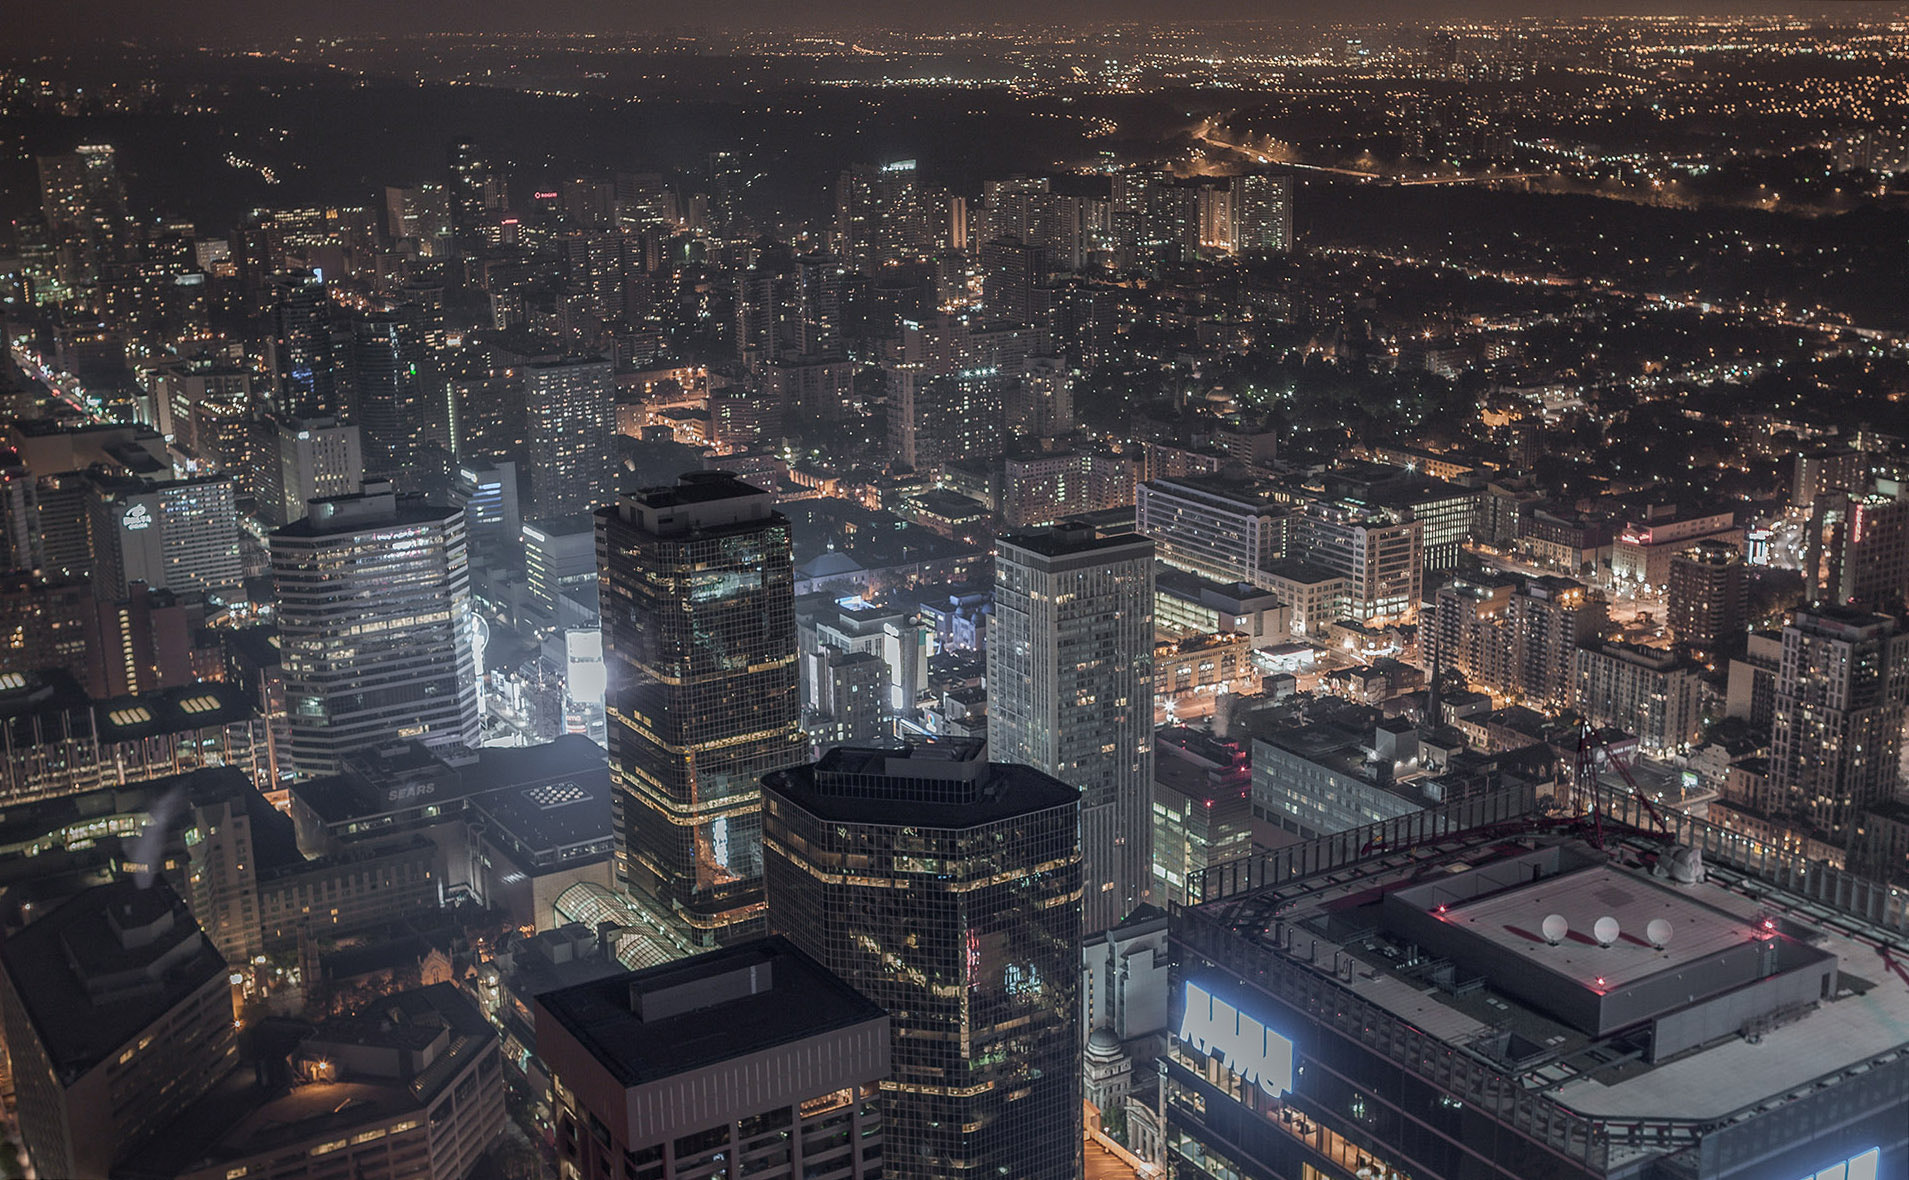 Photograph City (Grid) by Roof Topper on 500px